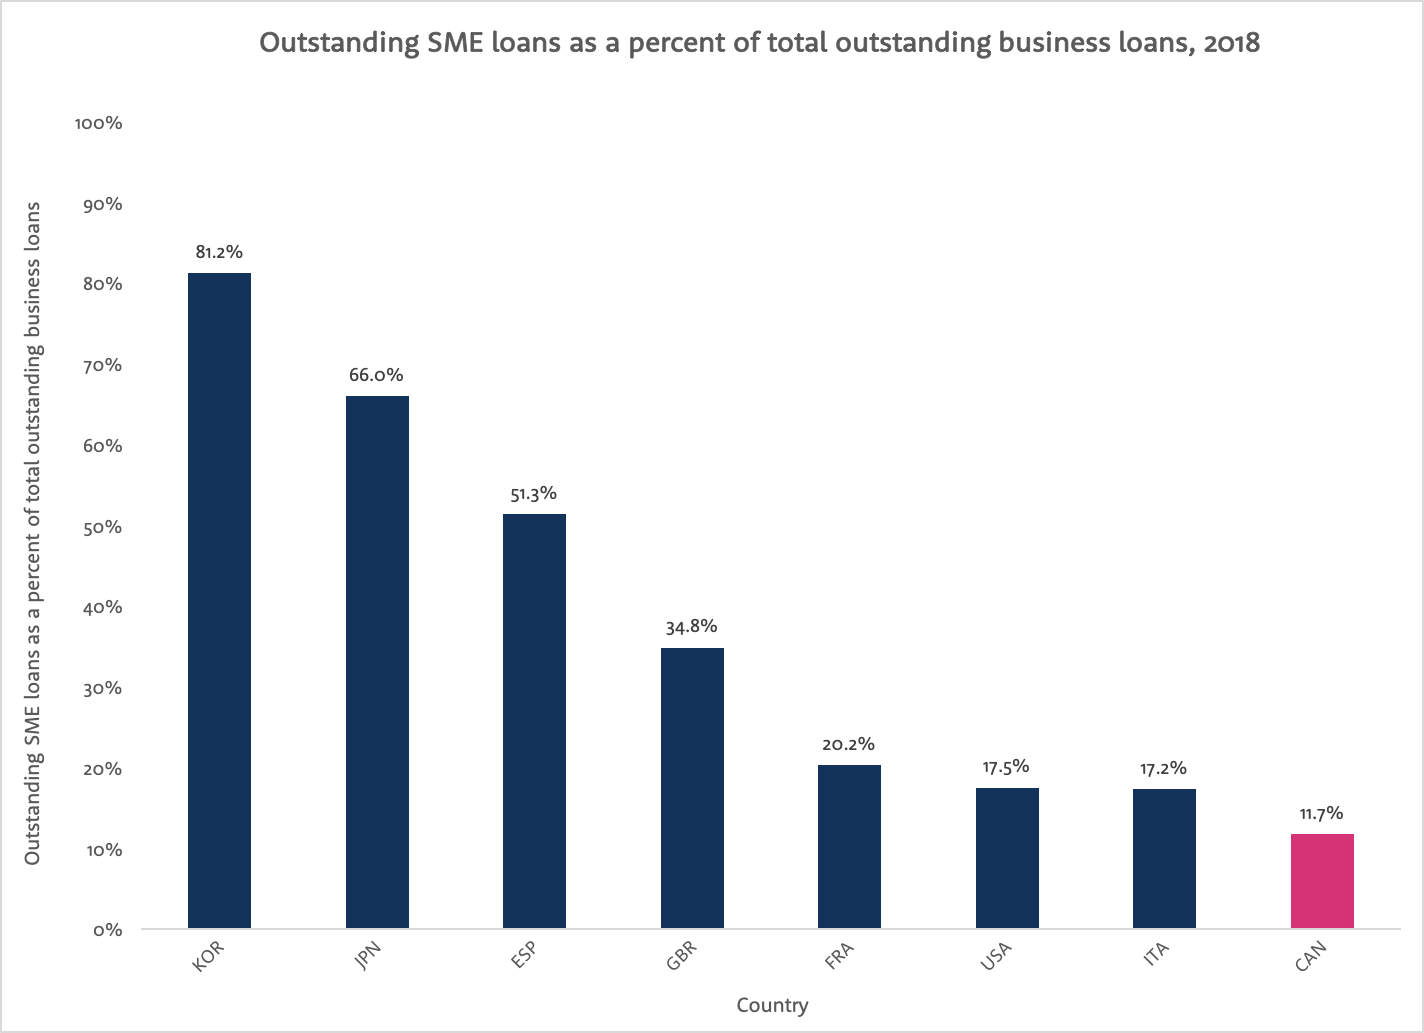 Bar graph with outstanding SME loans as a percent of total outstanding business loans in 2018 on the y-axis and country on the x-axis.